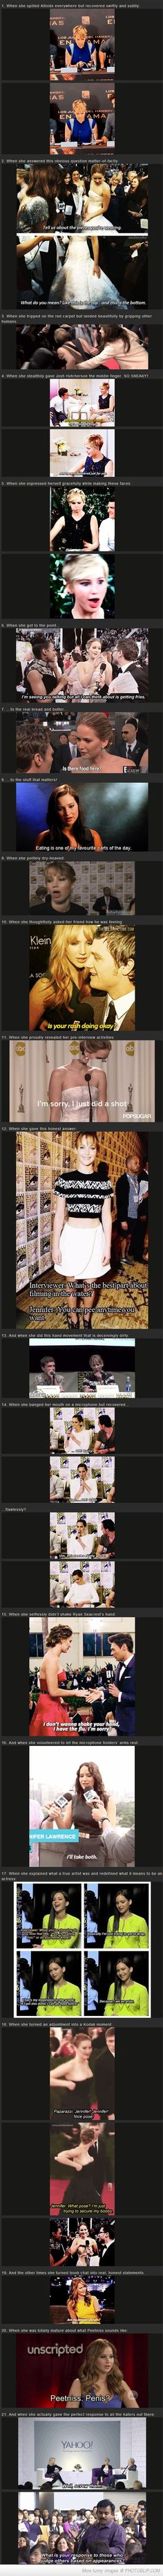 21 Times Jennifer Lawrence Totally Nailed The Whole Interview Thing. She is my hero :)